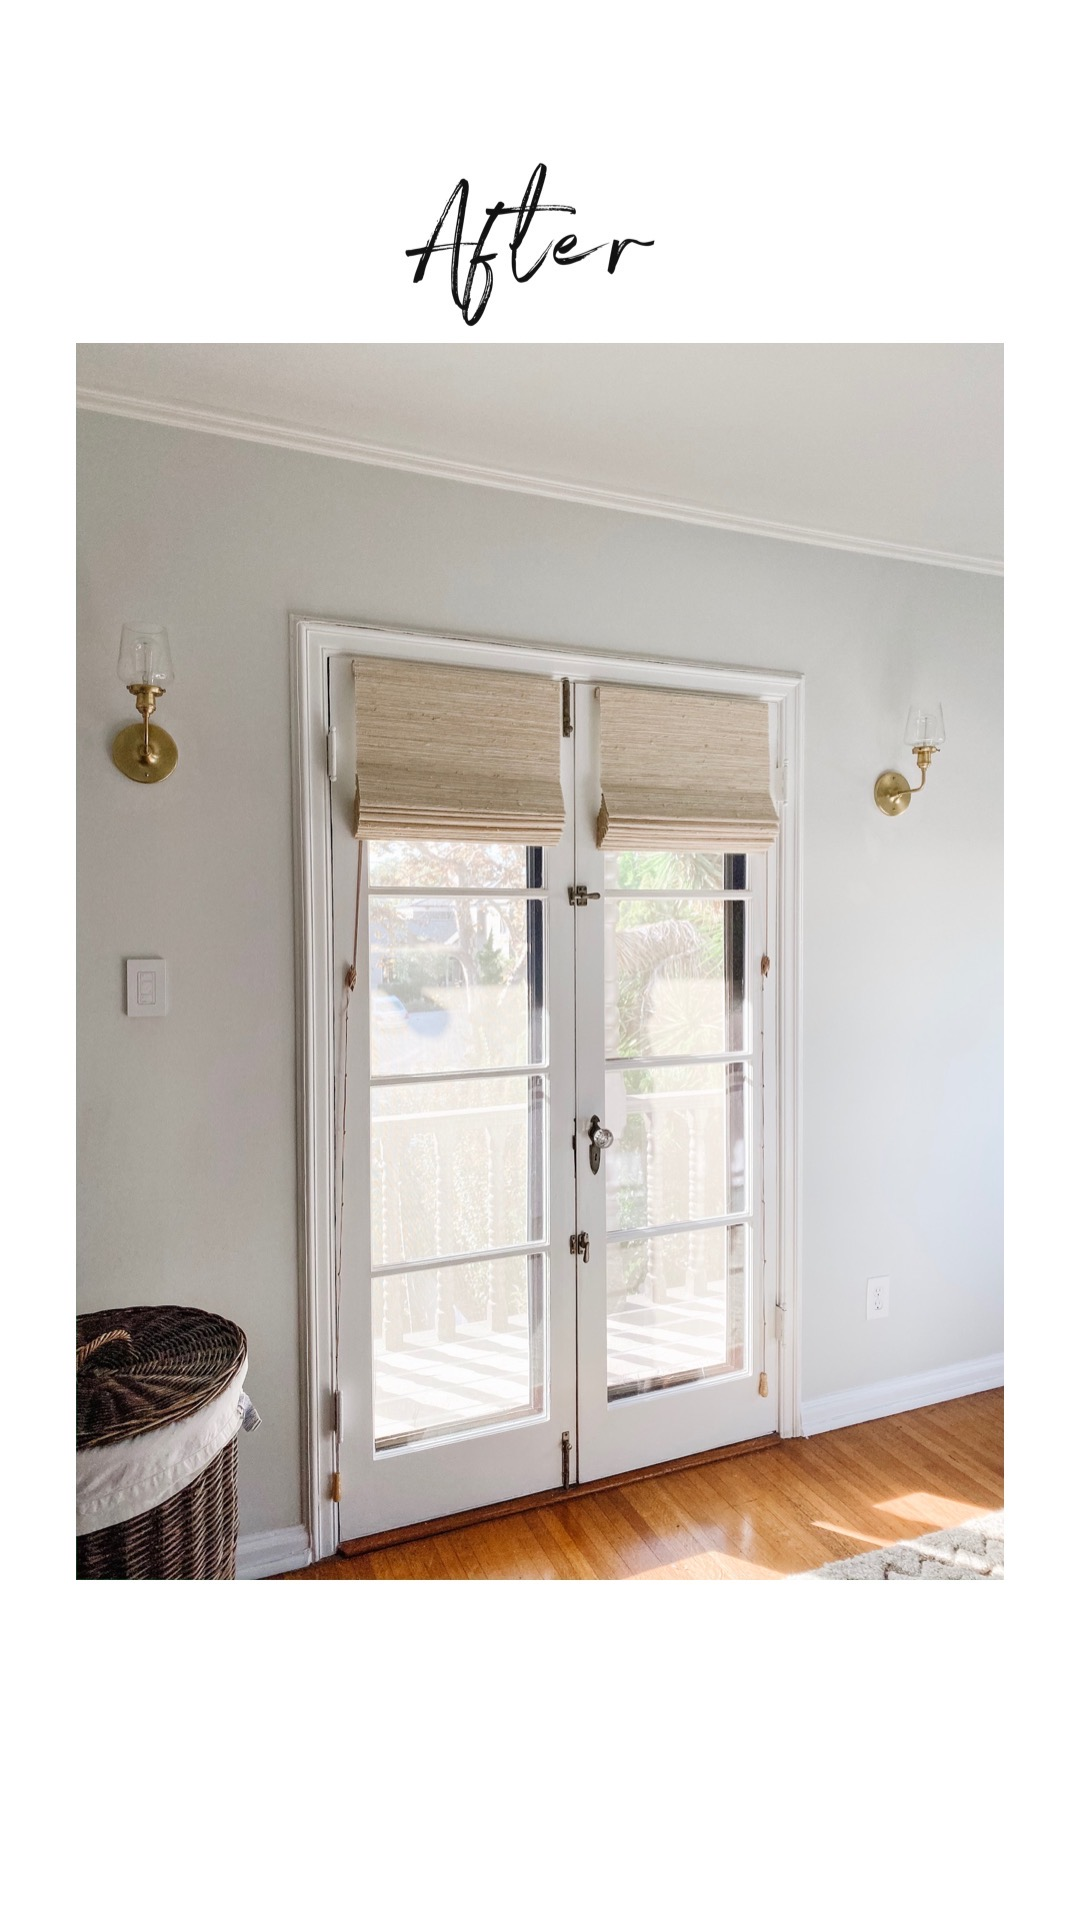 Before and after renovation reveals khaki-colored woven woods on a set of French doors